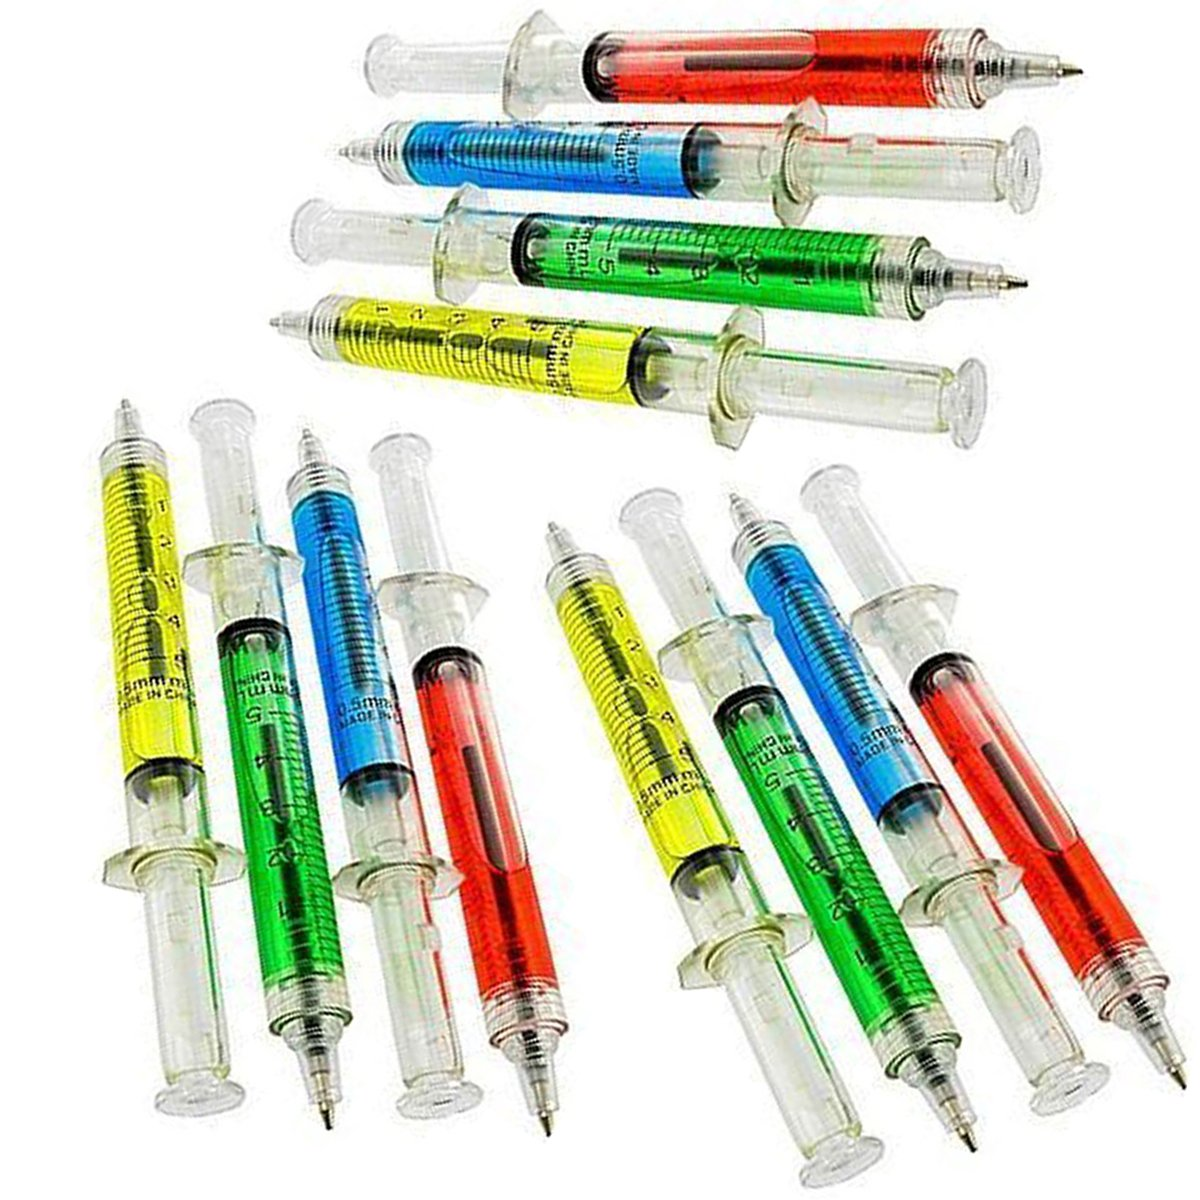 Syringe Pens in Assorted Colors - Pack of 12 - Party Favors